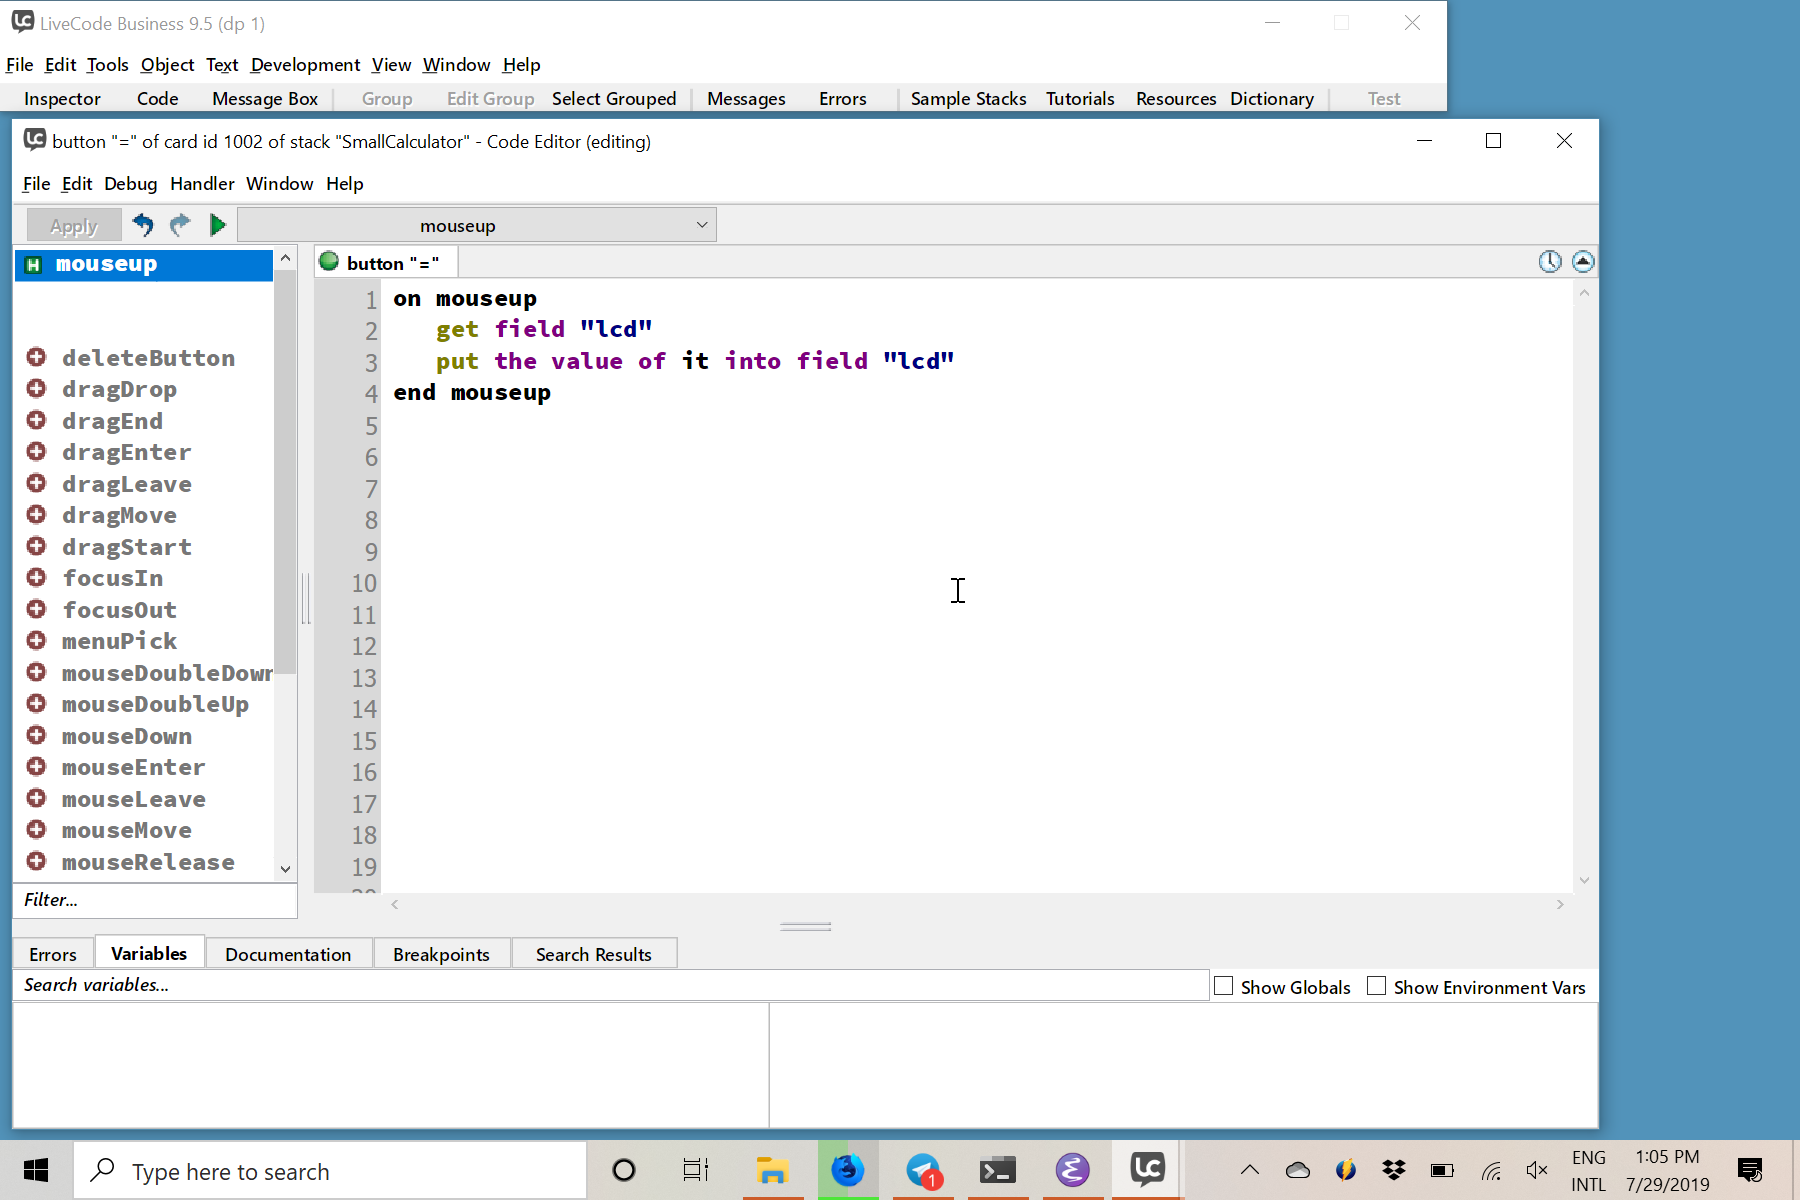 Script Editor showing the script for the _equal button_